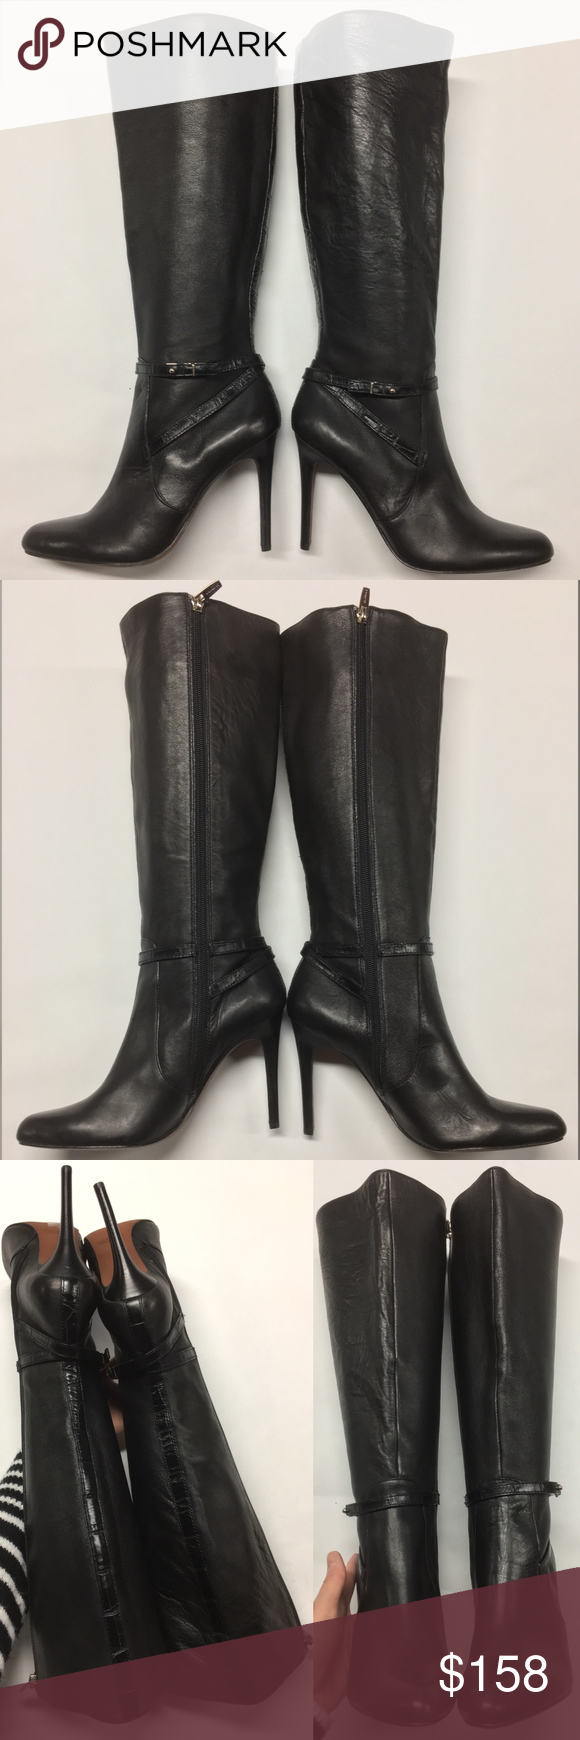 aaa3657d3b173 COACH Tall Leather Ursula Knee High Boots Heels Womens COACH Black Leather  Ursula Knee High Boots